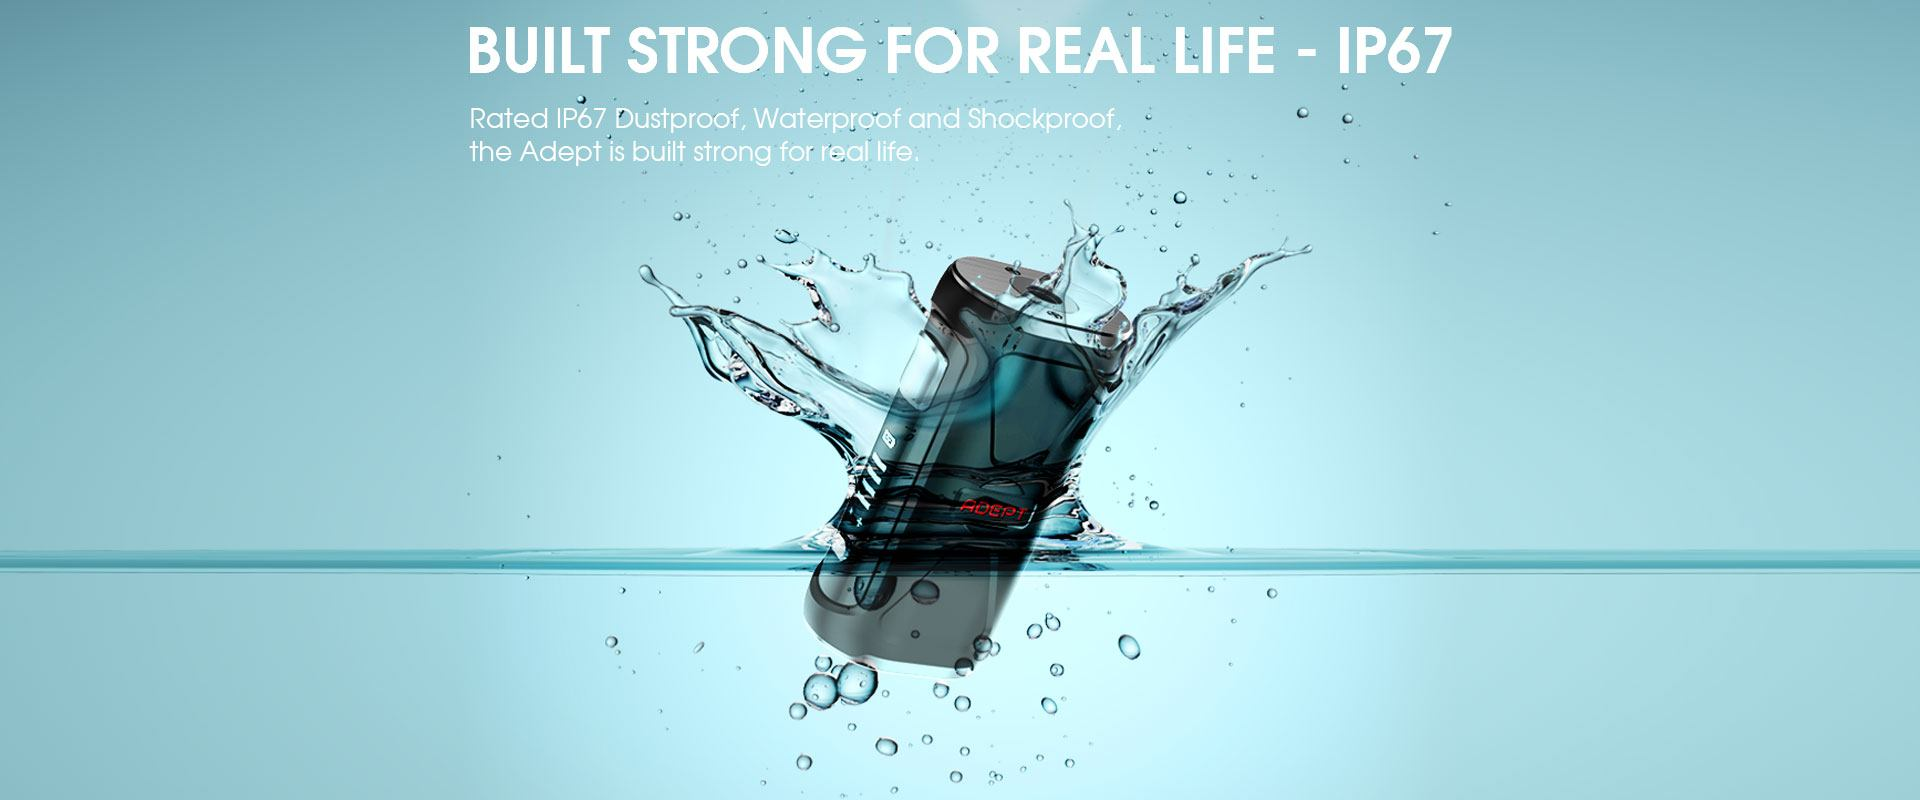 Adept waterproof dustproof and shockproof battery